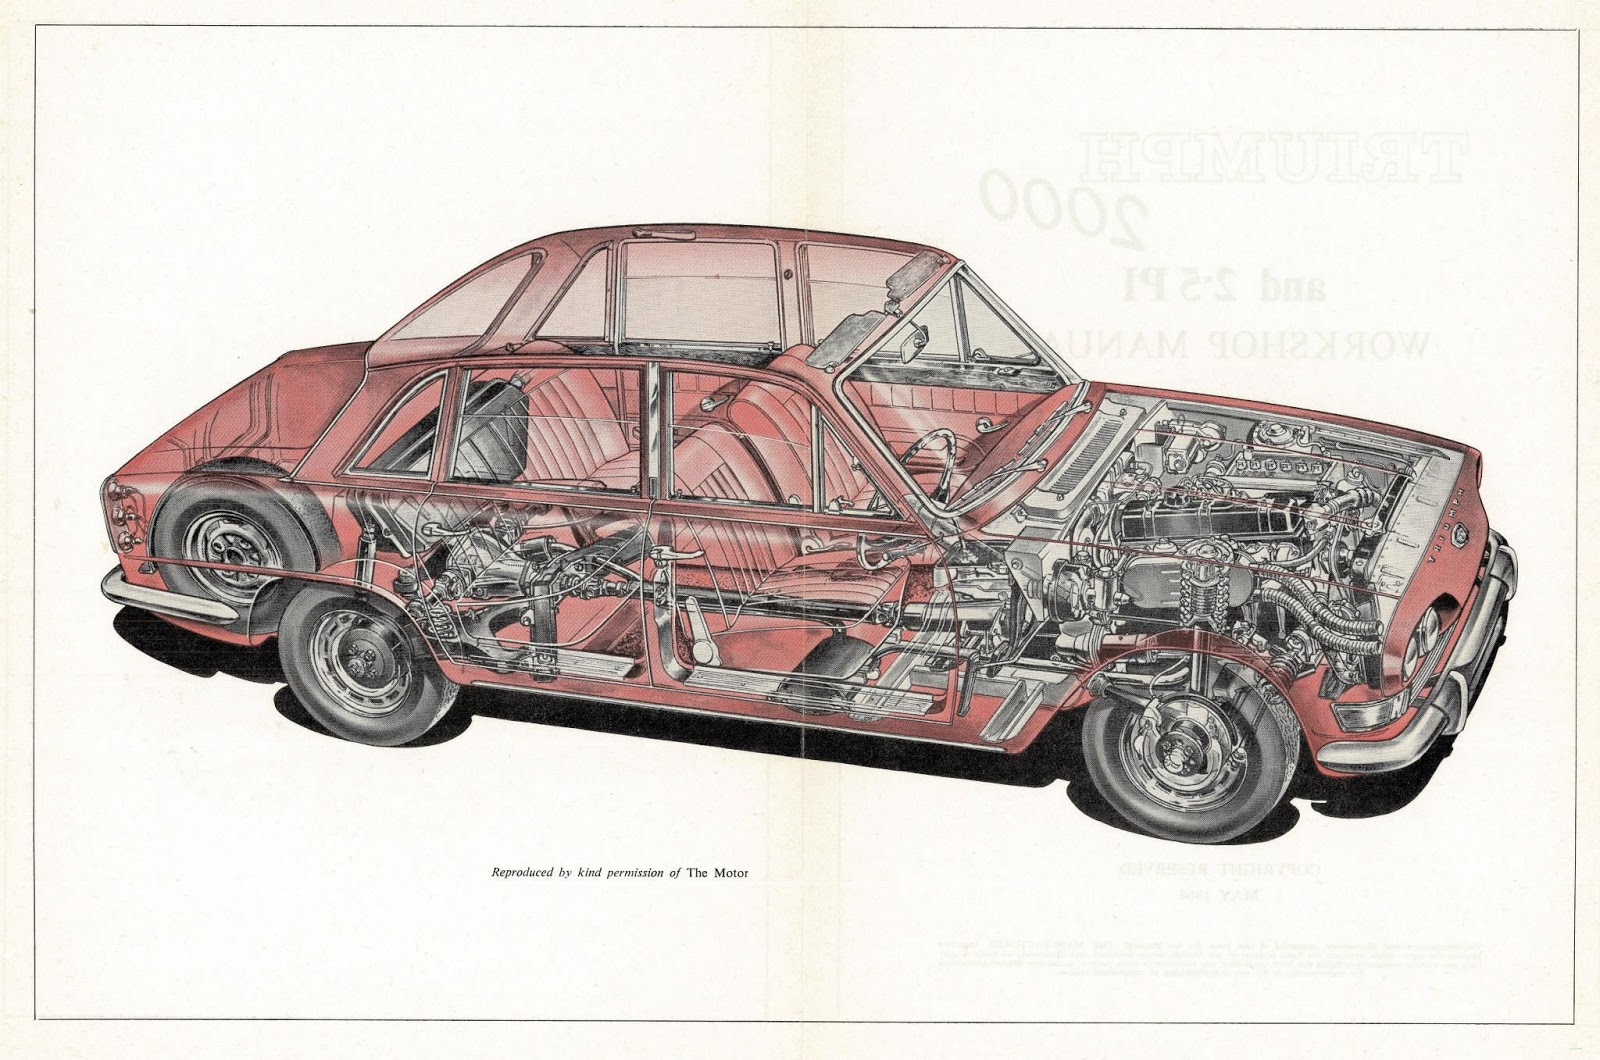 Triumph 2000 cut away image